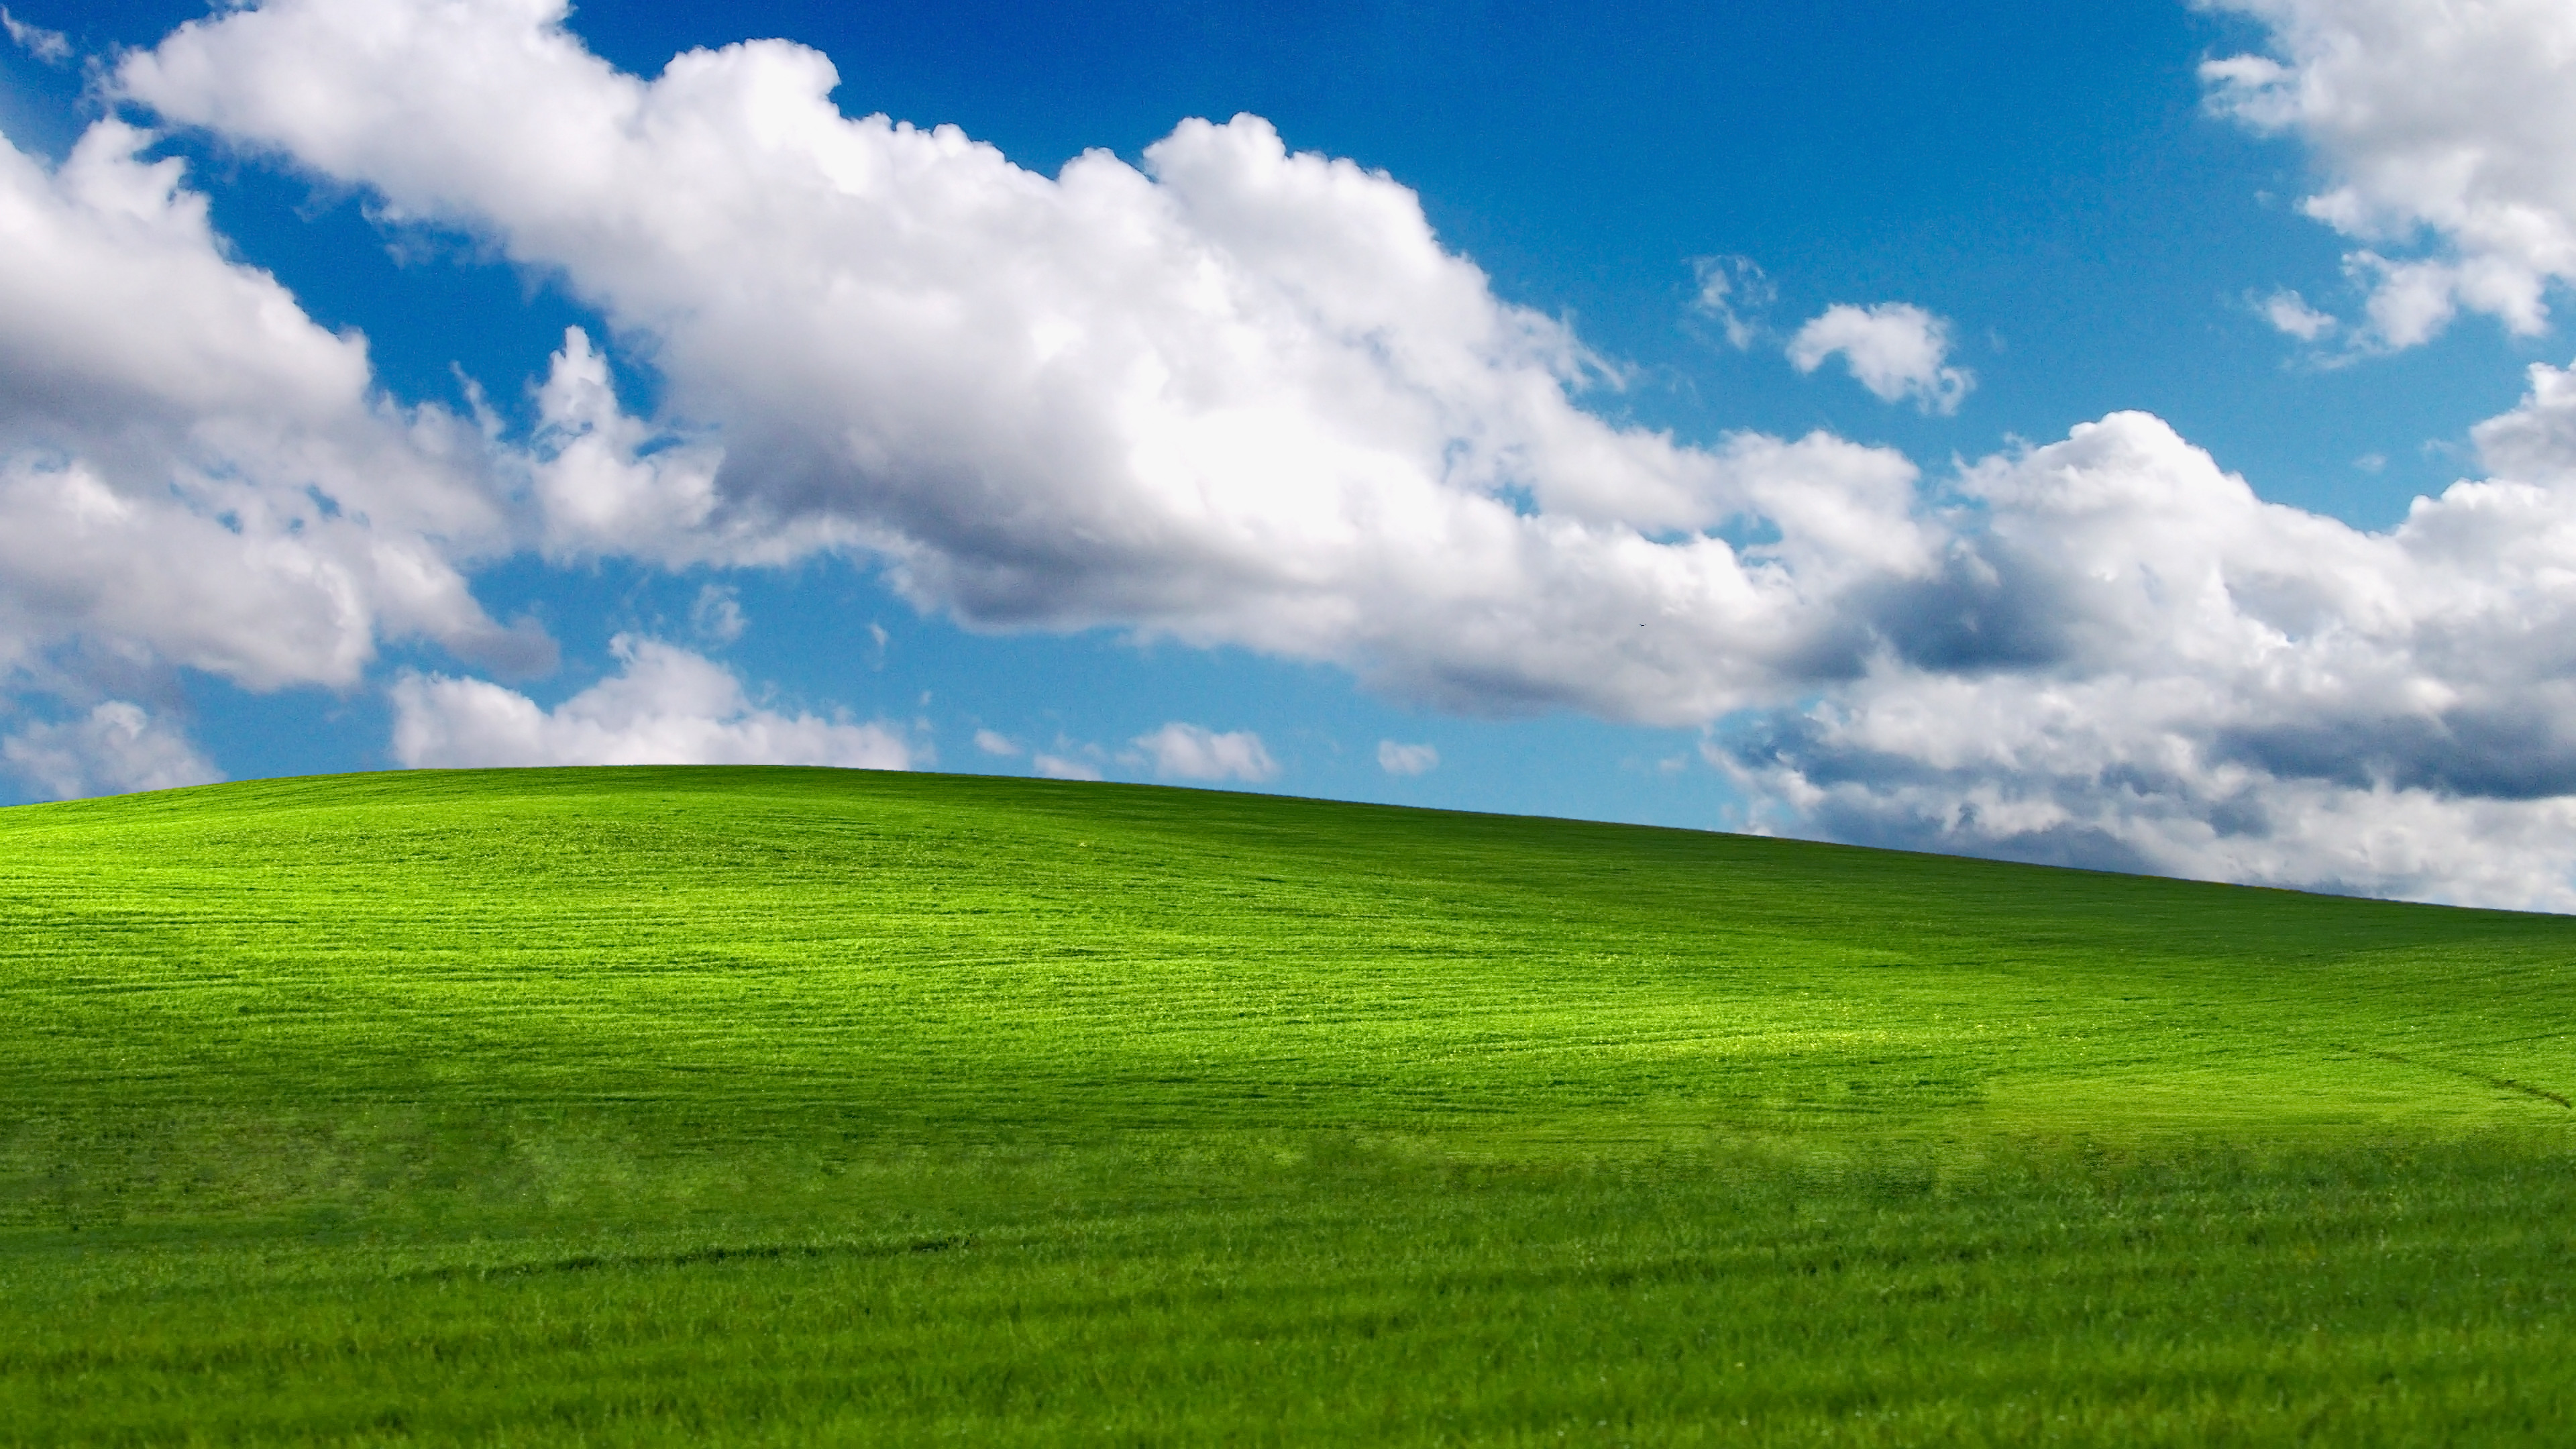 Windows 10 Original Wallpaper: Windows Xp Wallpaper HD ·①